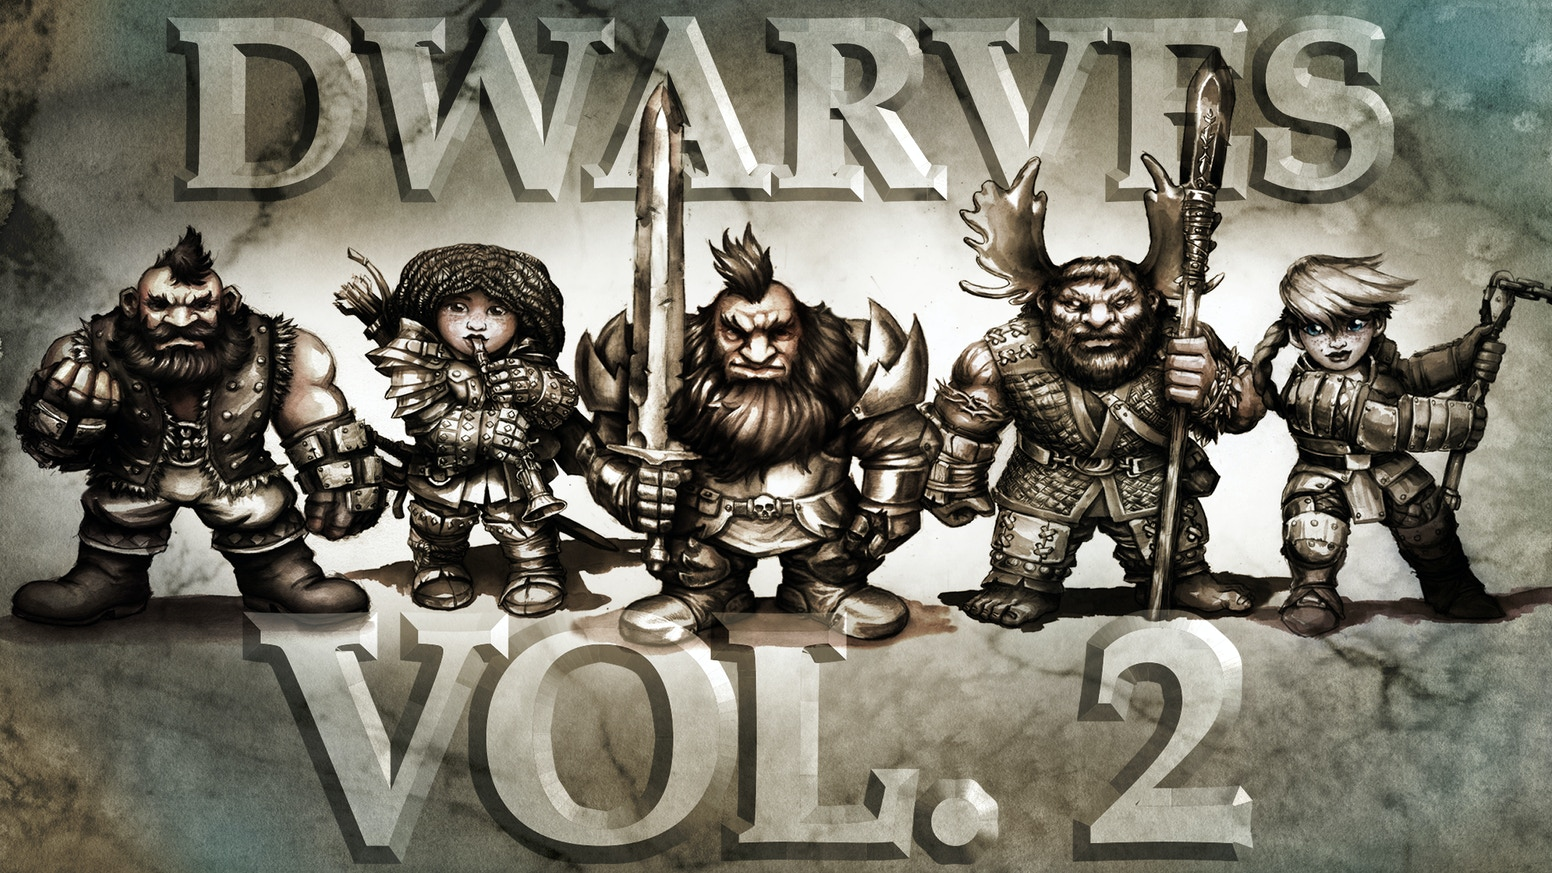 We're going to make as many dungeon-crawling, dragon-slaying, little-hairy-swimming 28mm scale tabletop dwarven hero minis as we can!